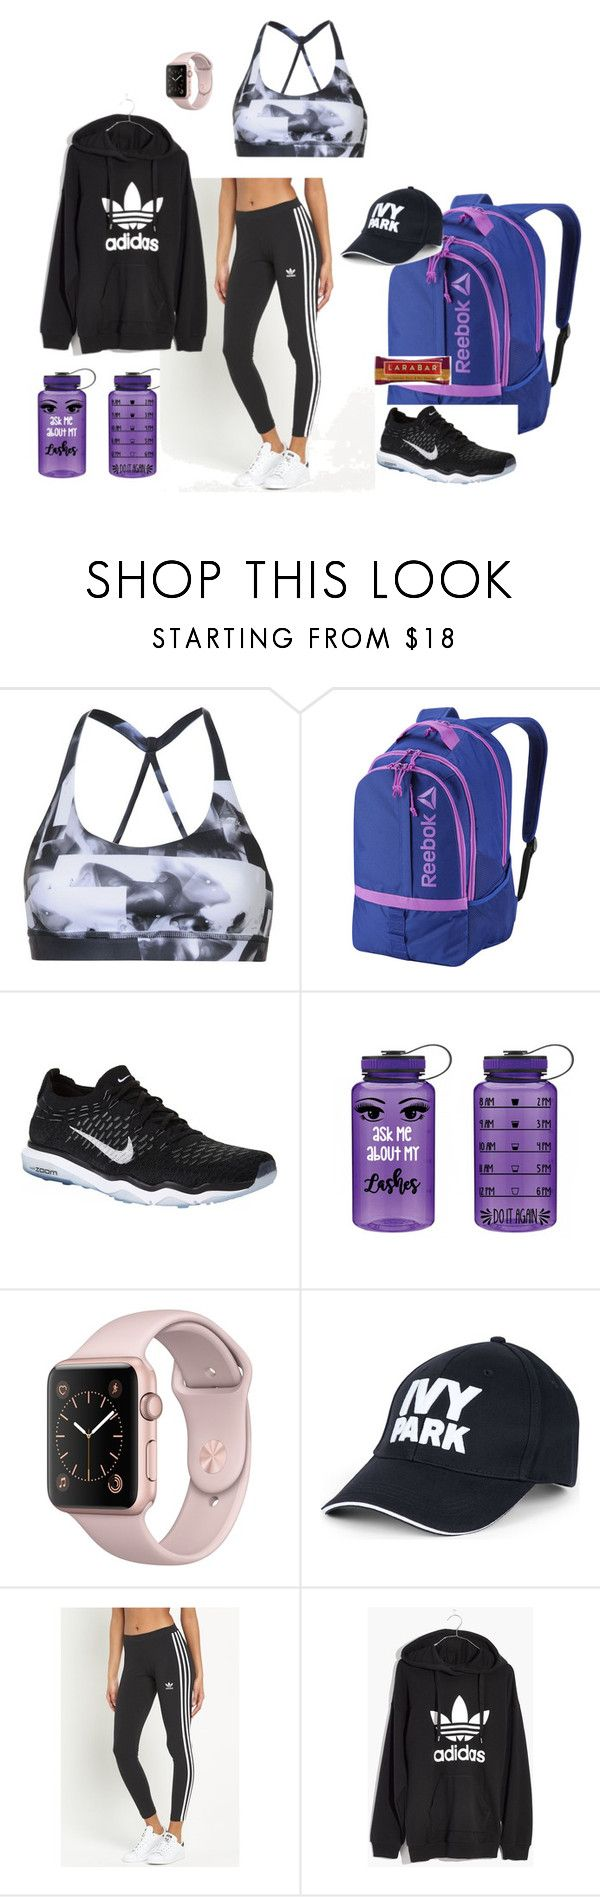 """hidden scars fashion collectsion"" by kariasmarshall on Polyvore featuring Reebok, NIKE, Ivy Park, adidas Originals and Madewell"